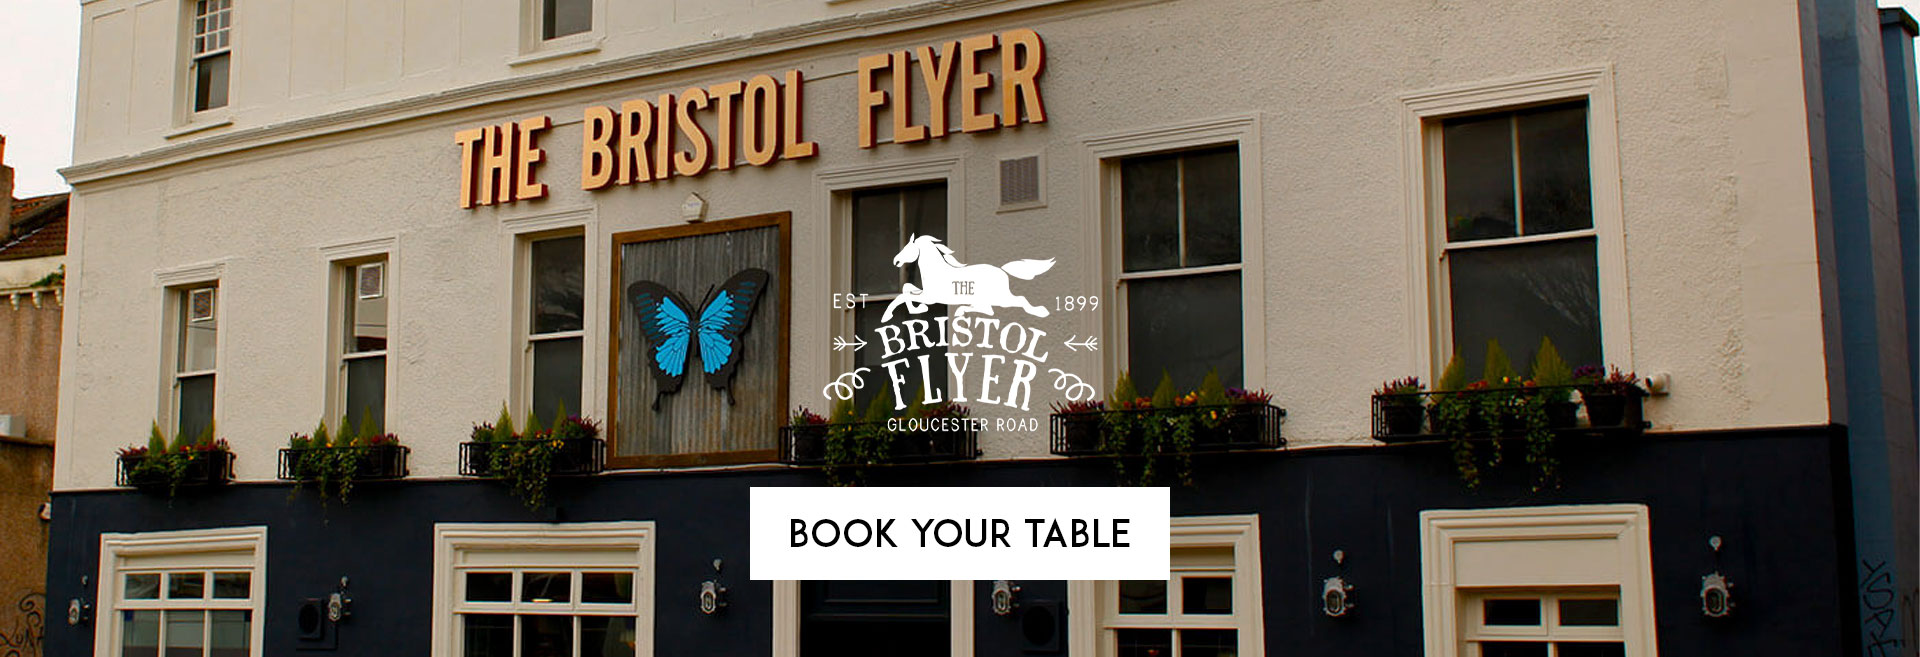 Book Your Table at The Flyer